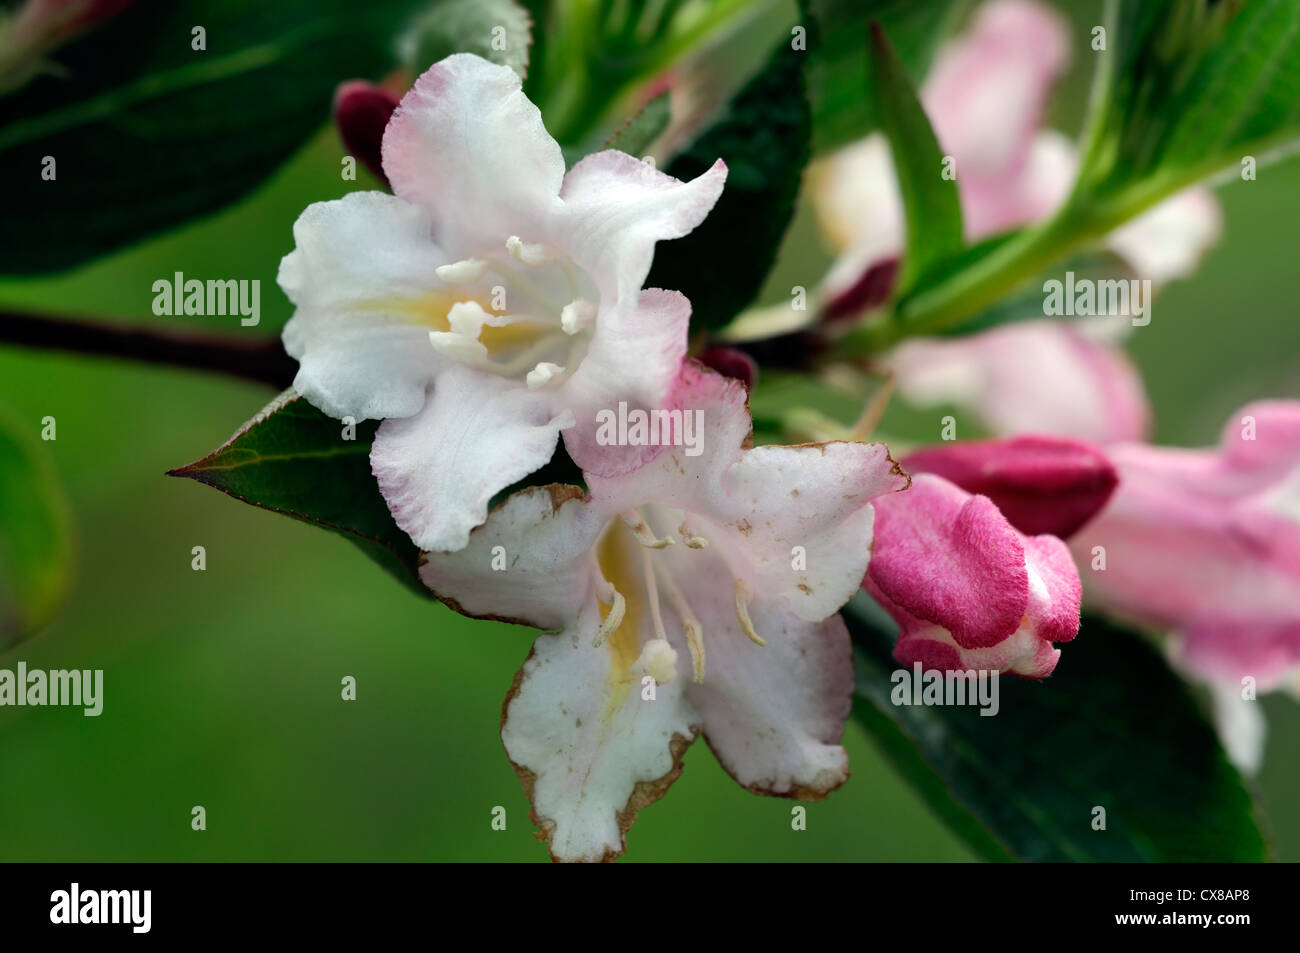 weigela japonica var sinica flowering flowers blooms blossoms shrub shrubs pink white plant portraits closeup selective Stock Photo